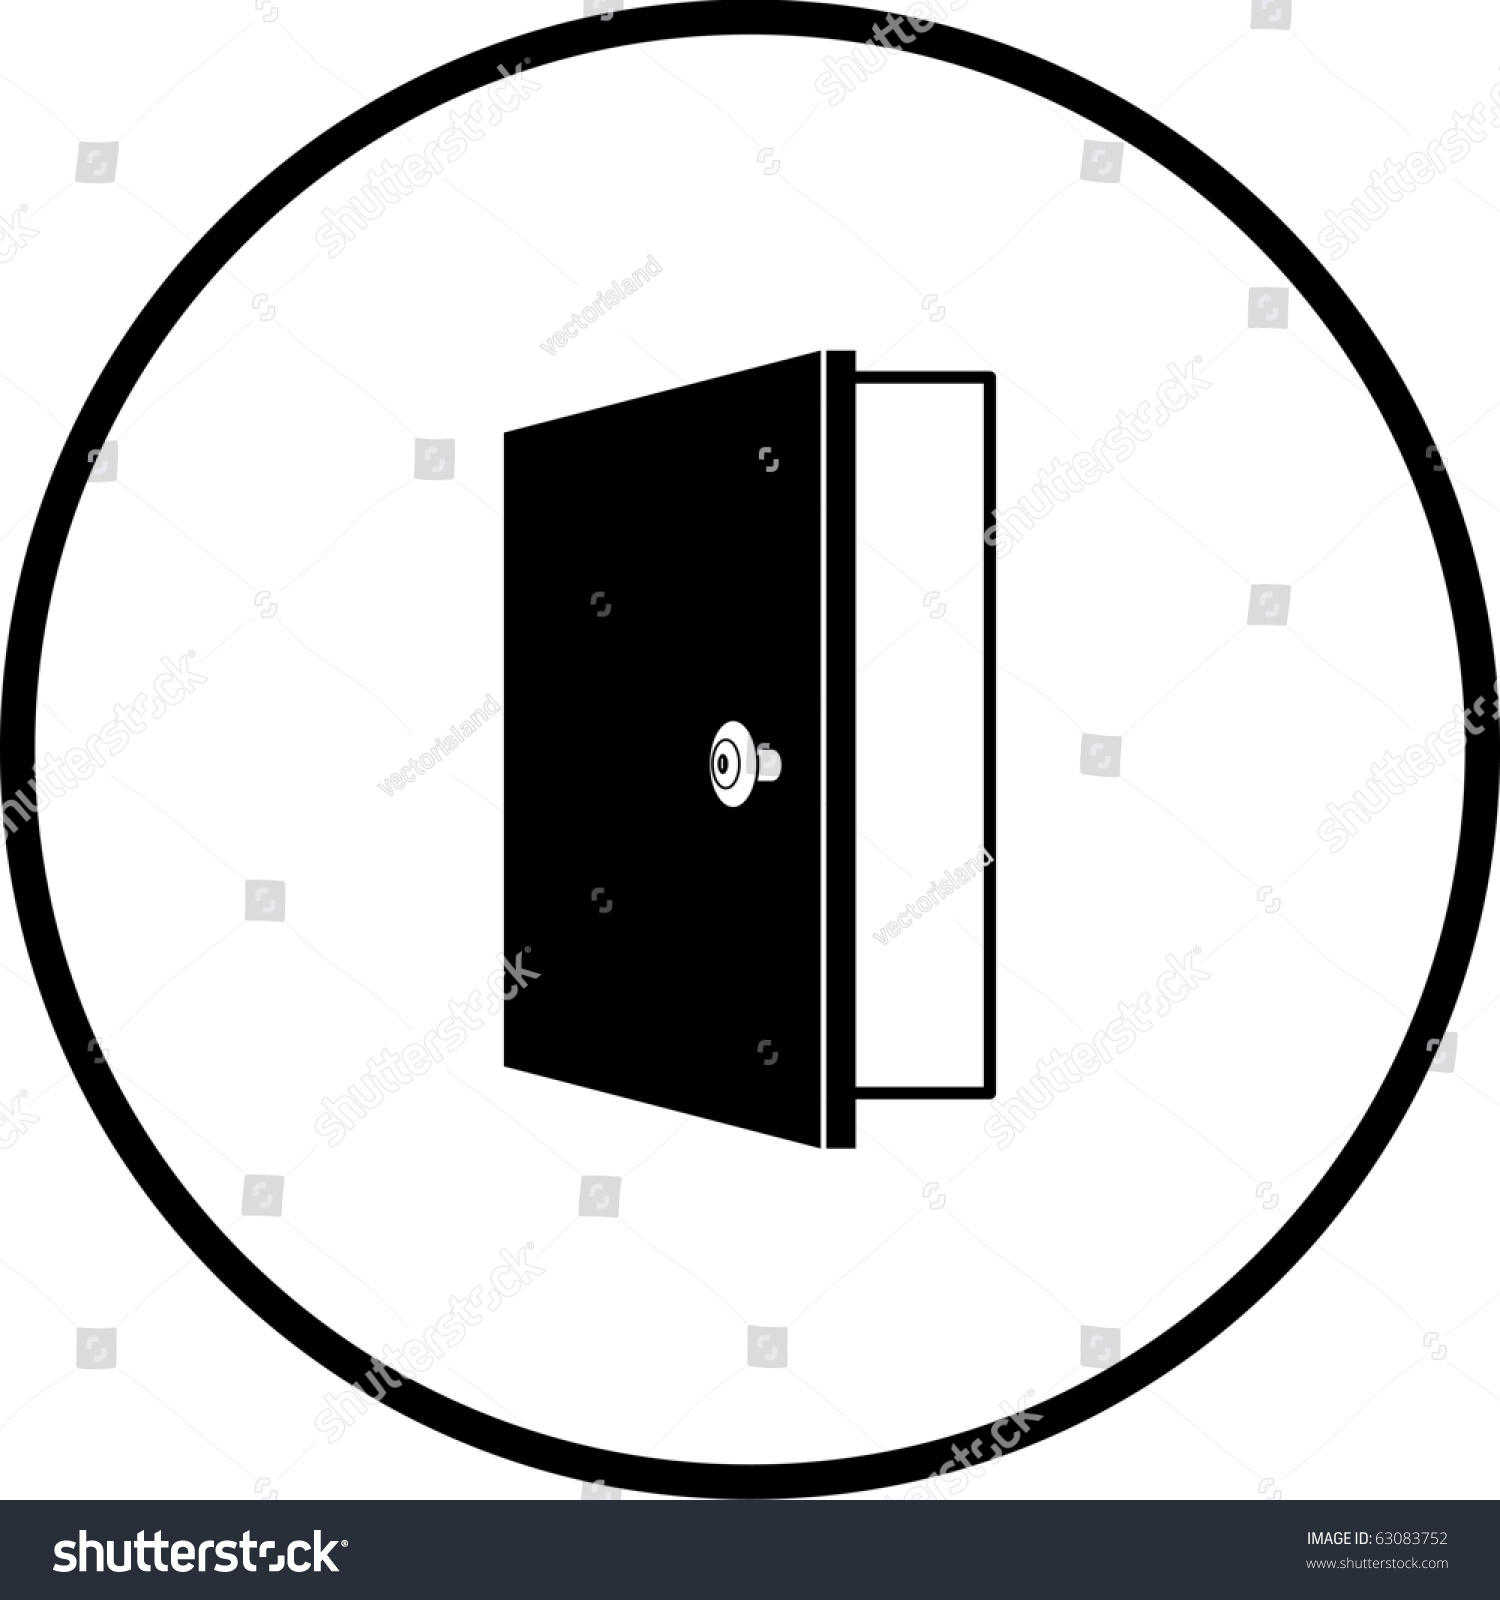 open door symbol stock photo 63083752 shutterstock